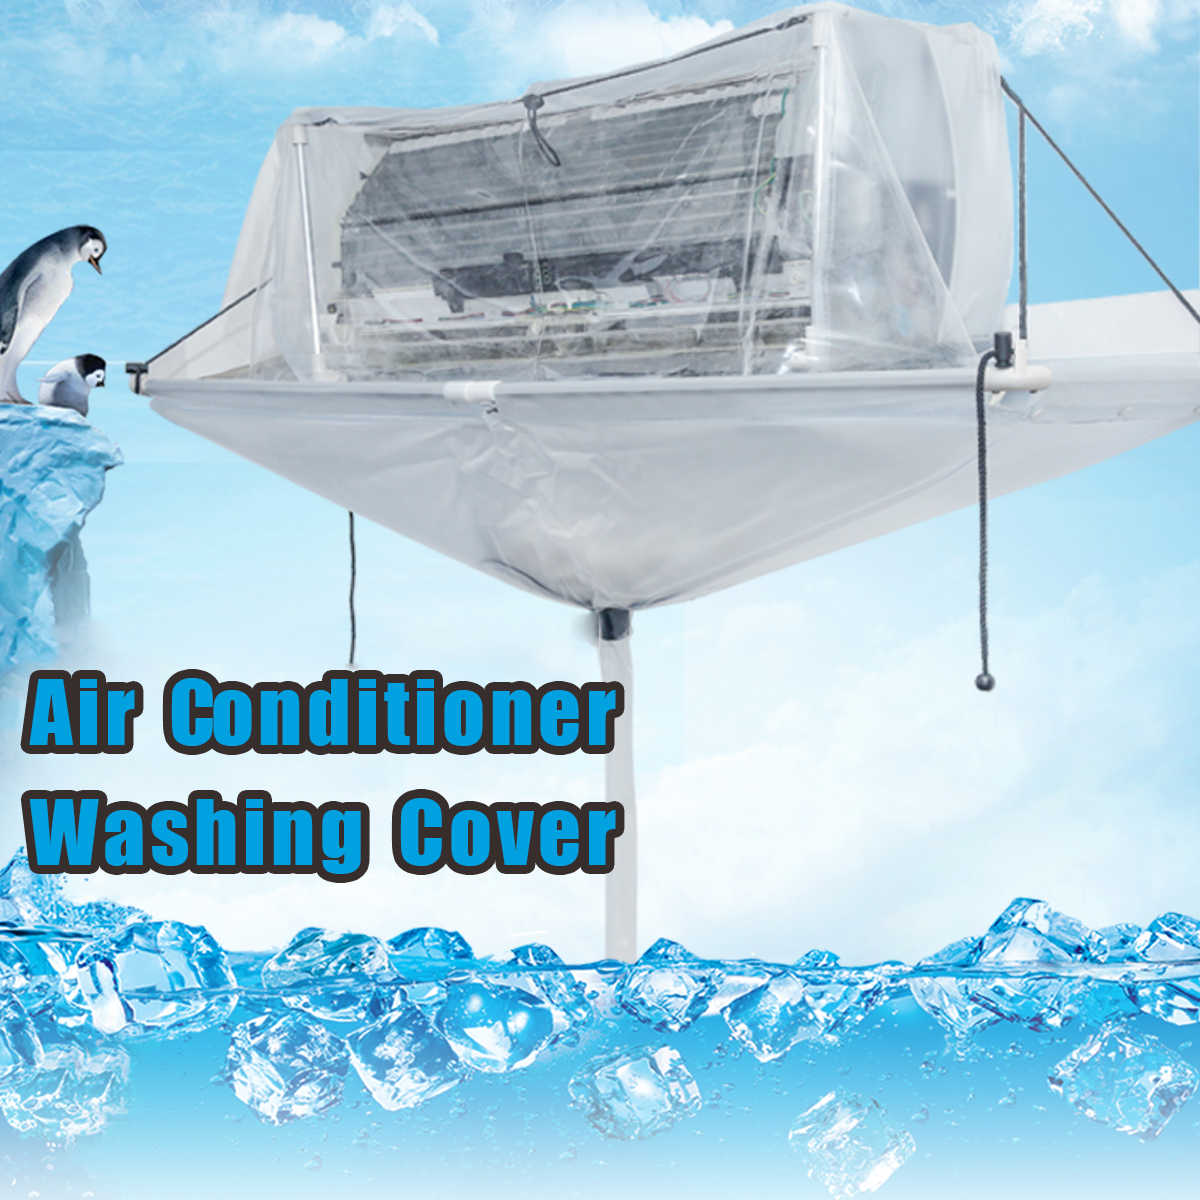 Air Conditioner Cleaning Washing Tool